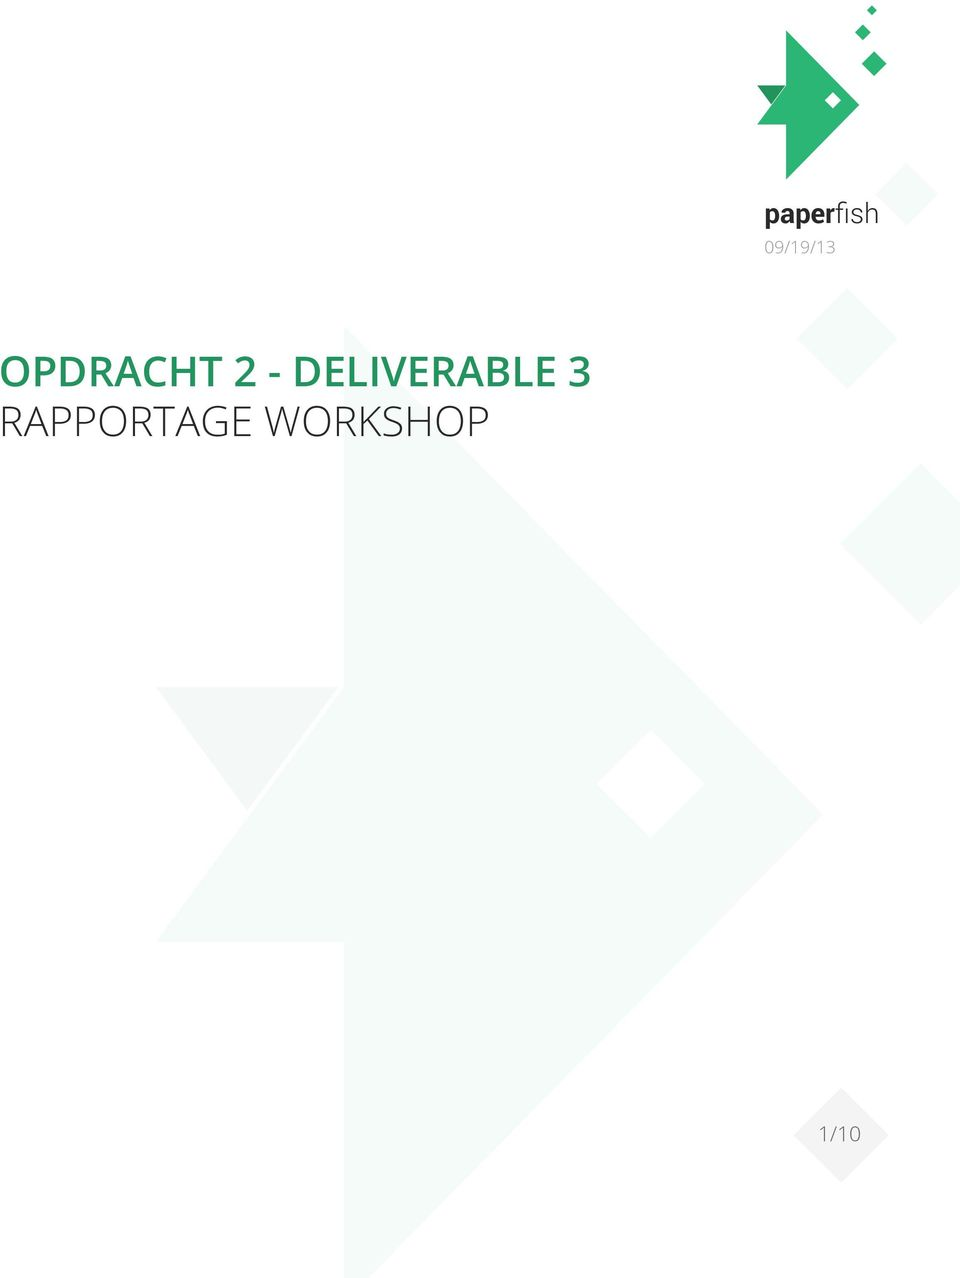 2 - DELIVERABLE 3